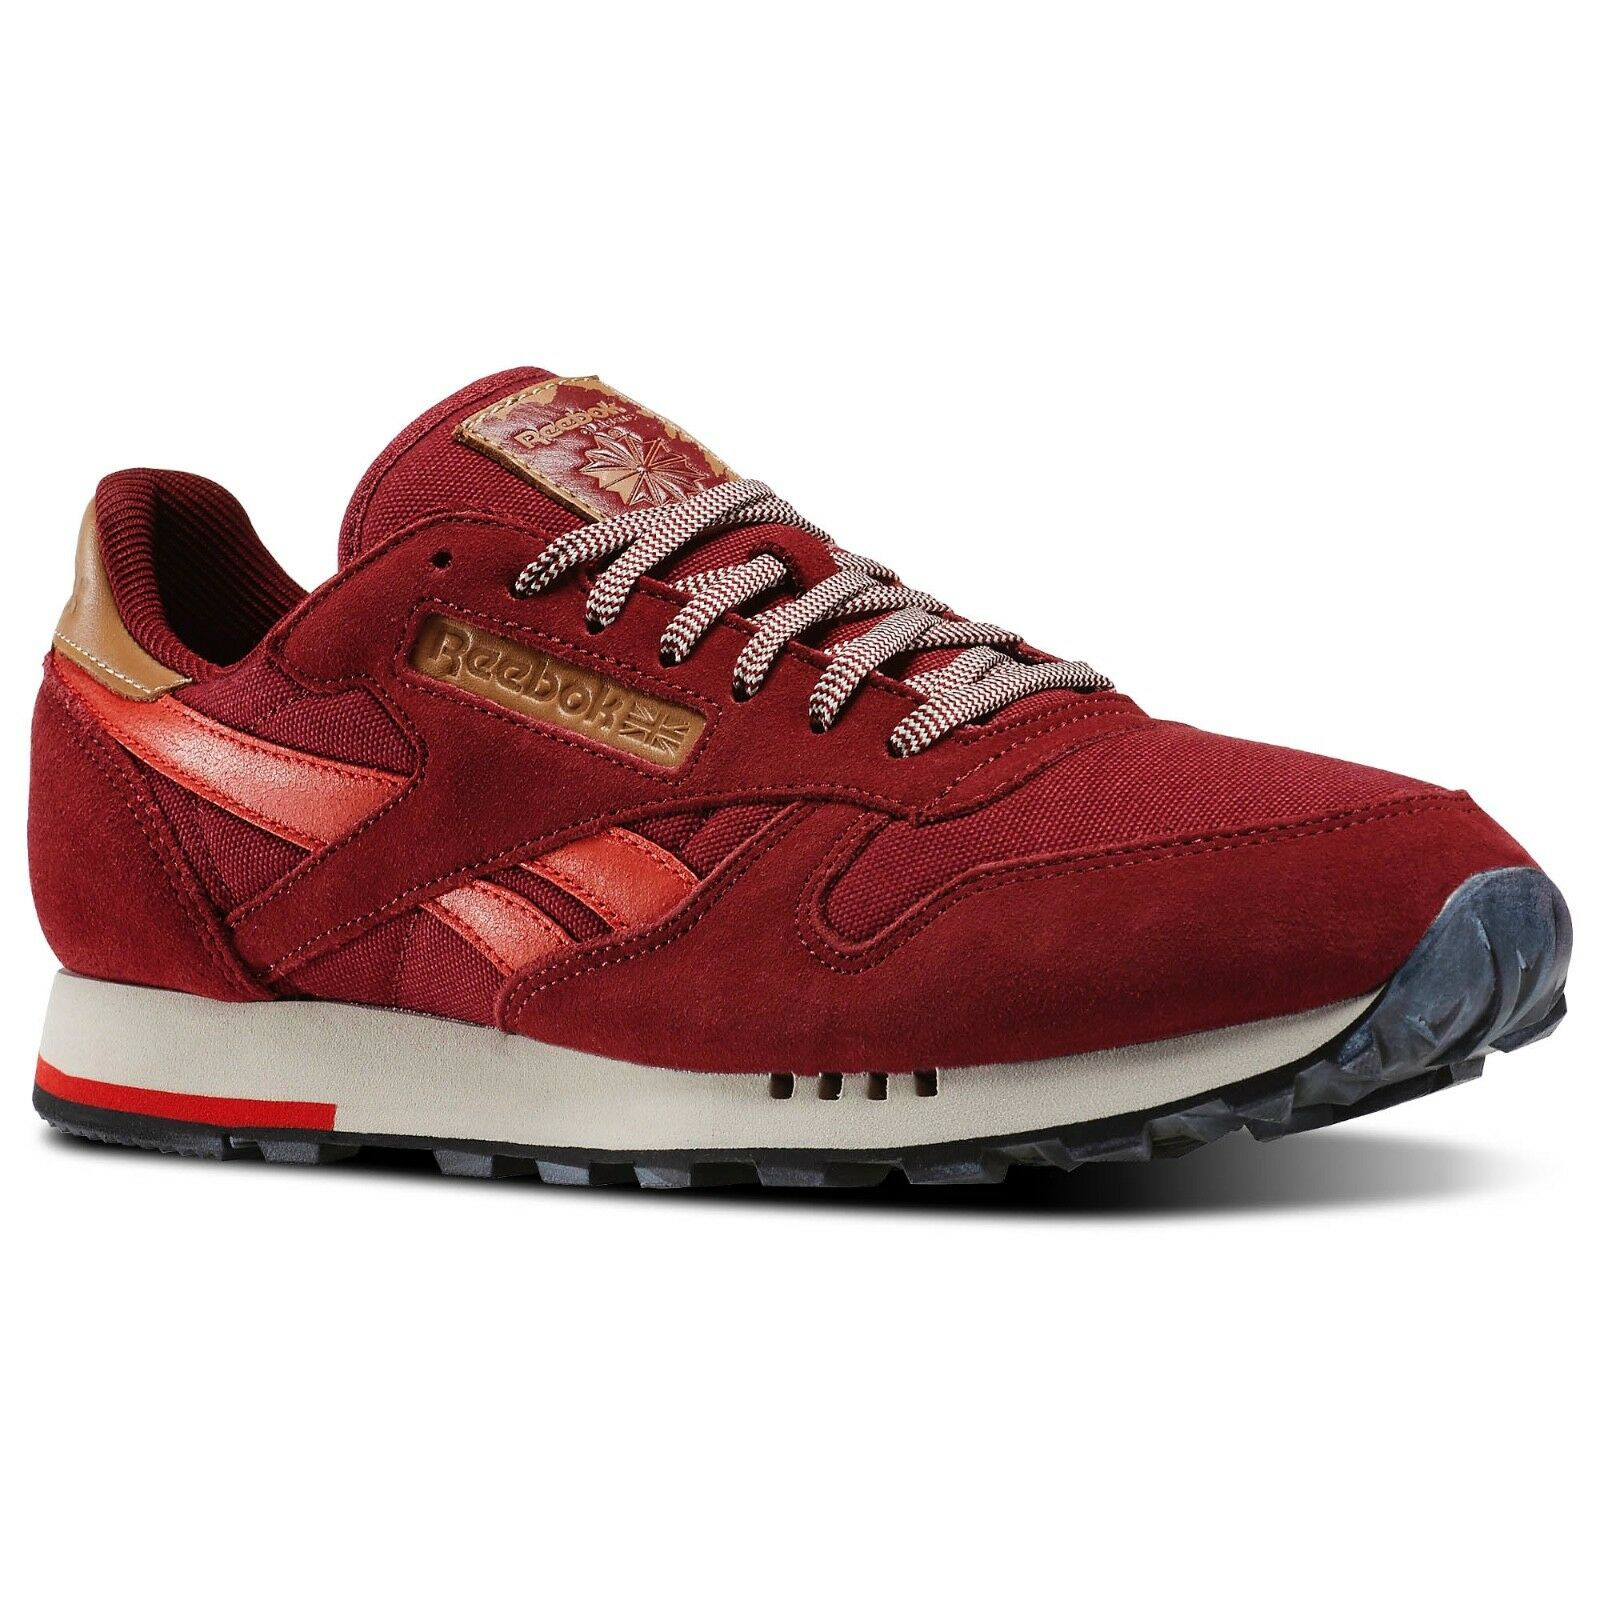 36c44c847bcbbf Reebok Men s Classic Leather Leather Leather Utility Trainers Running Shoes  - V72845 c46a1e